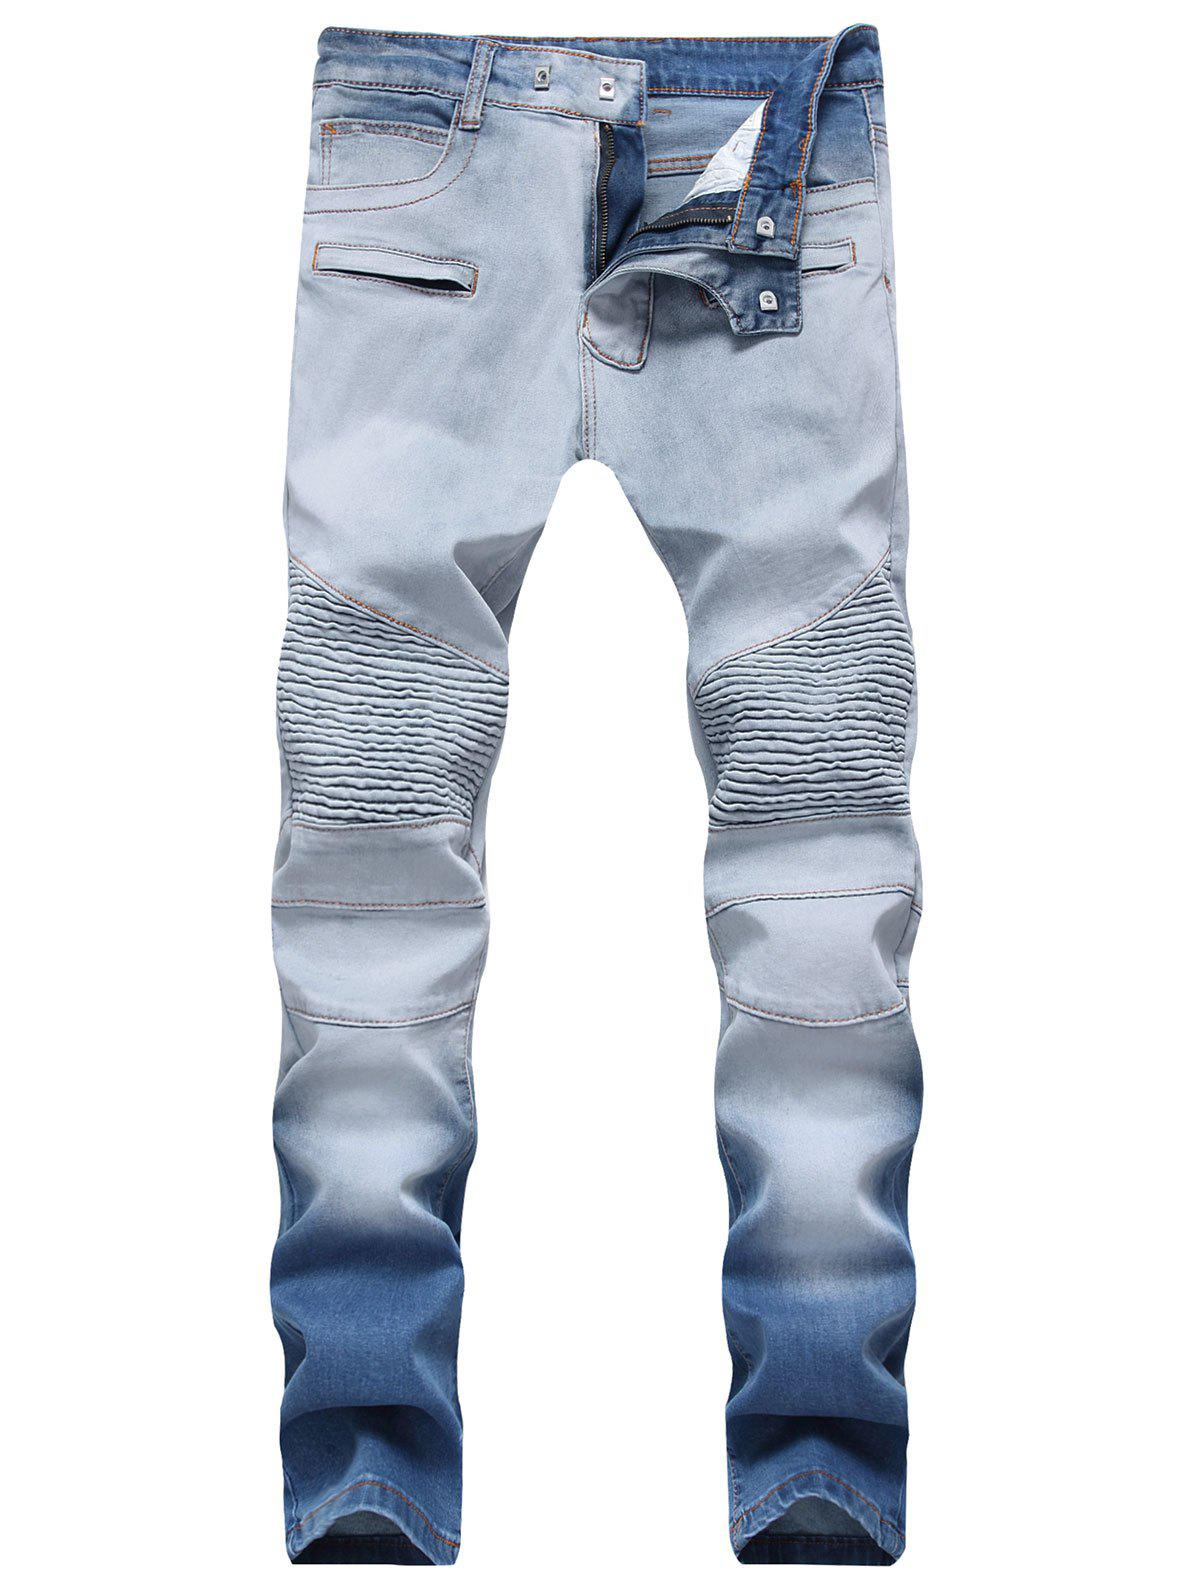 New Hook Button Straight Leg Distressed Biker Jeans